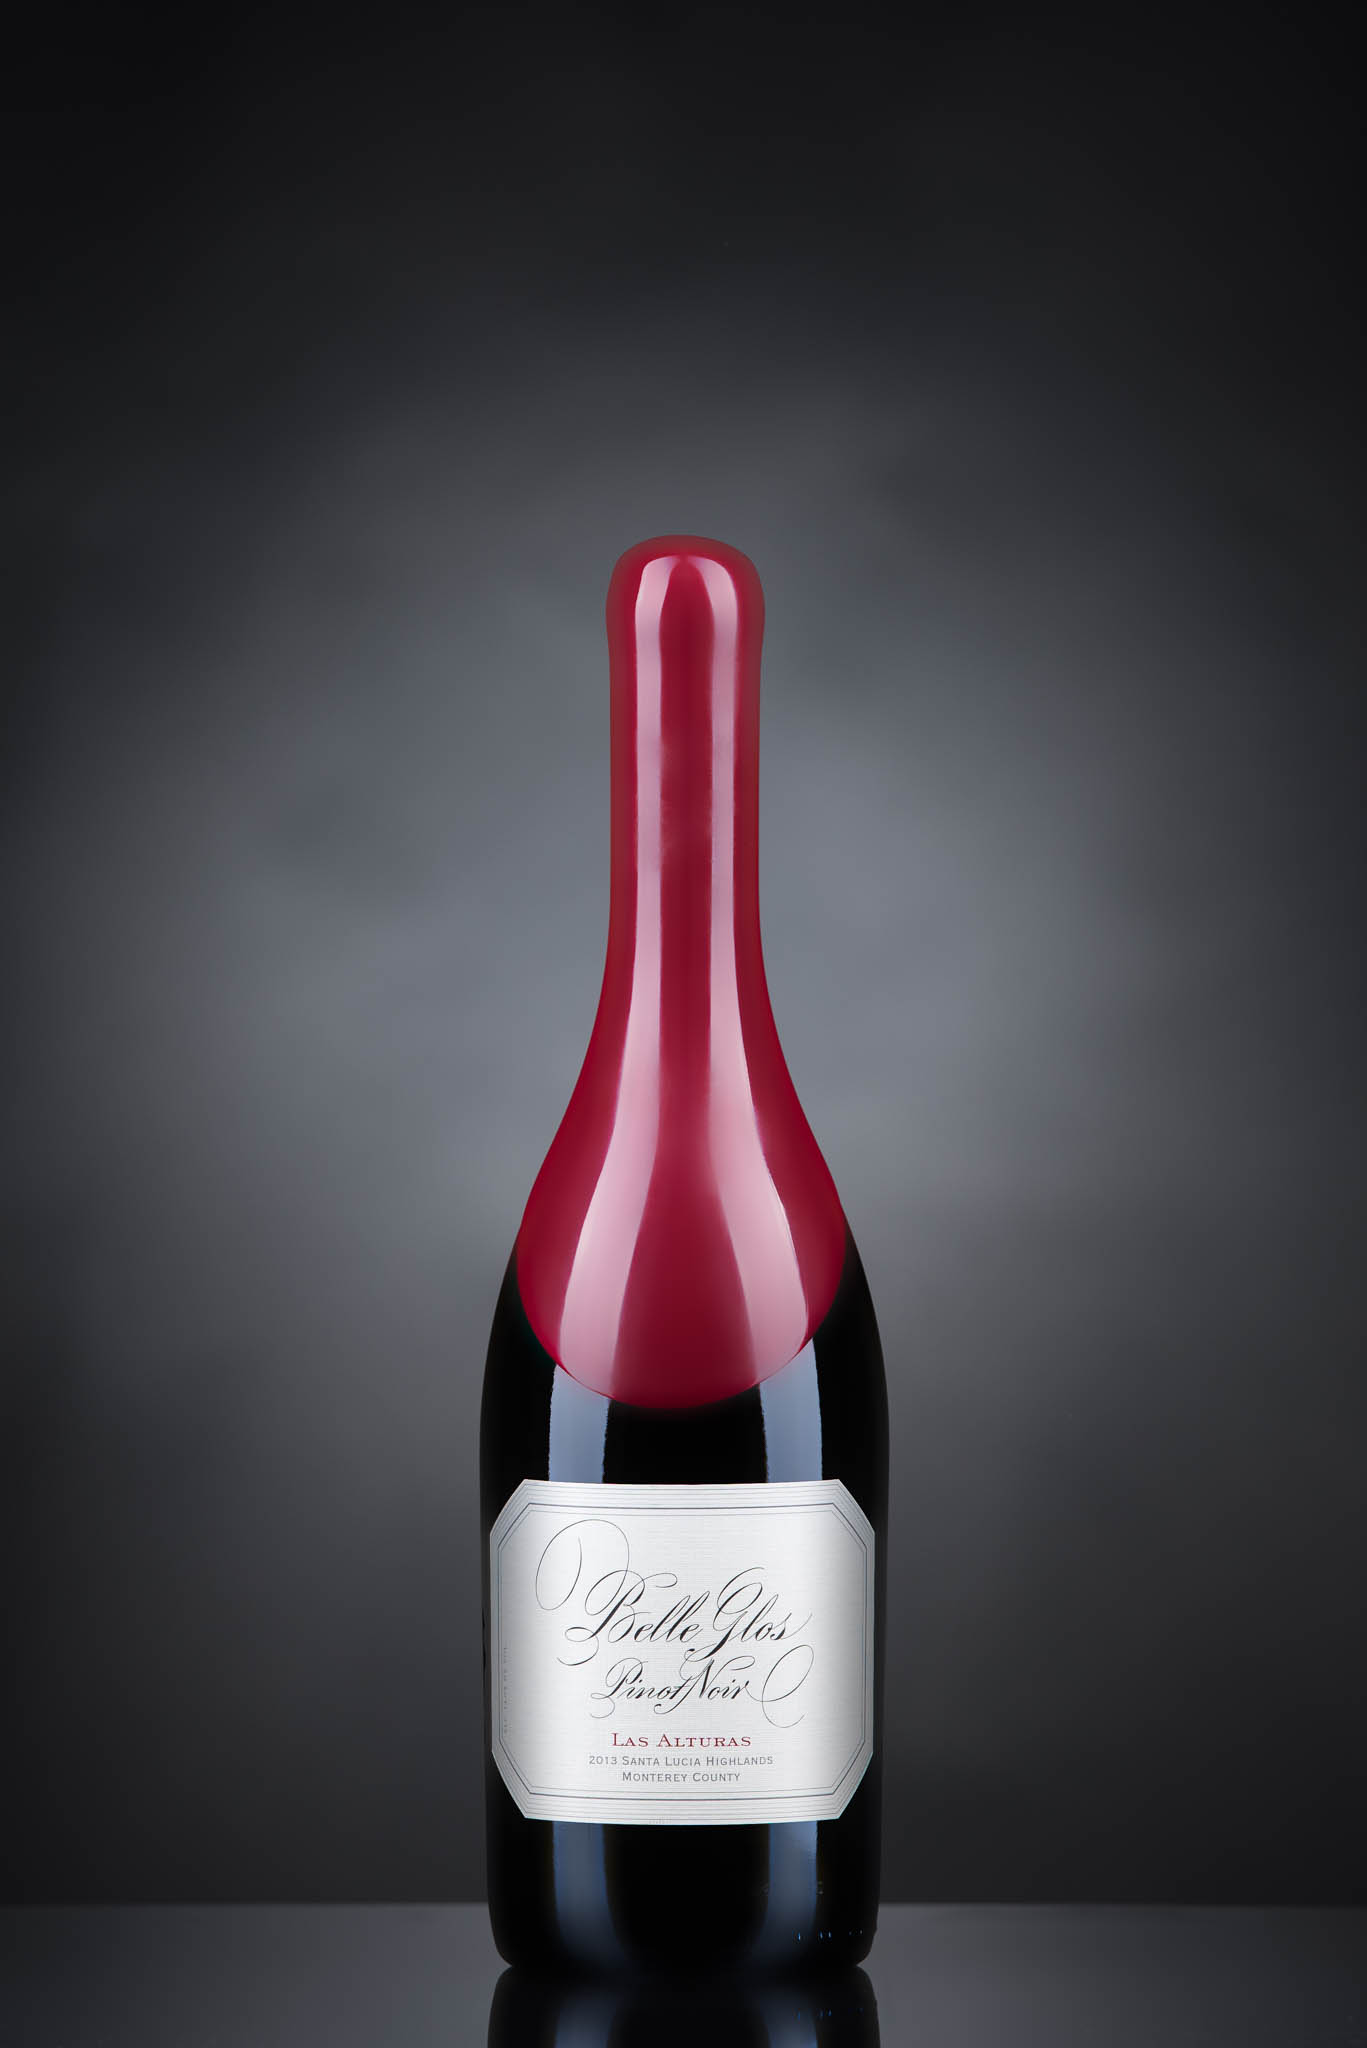 Product shot of a wine bottle